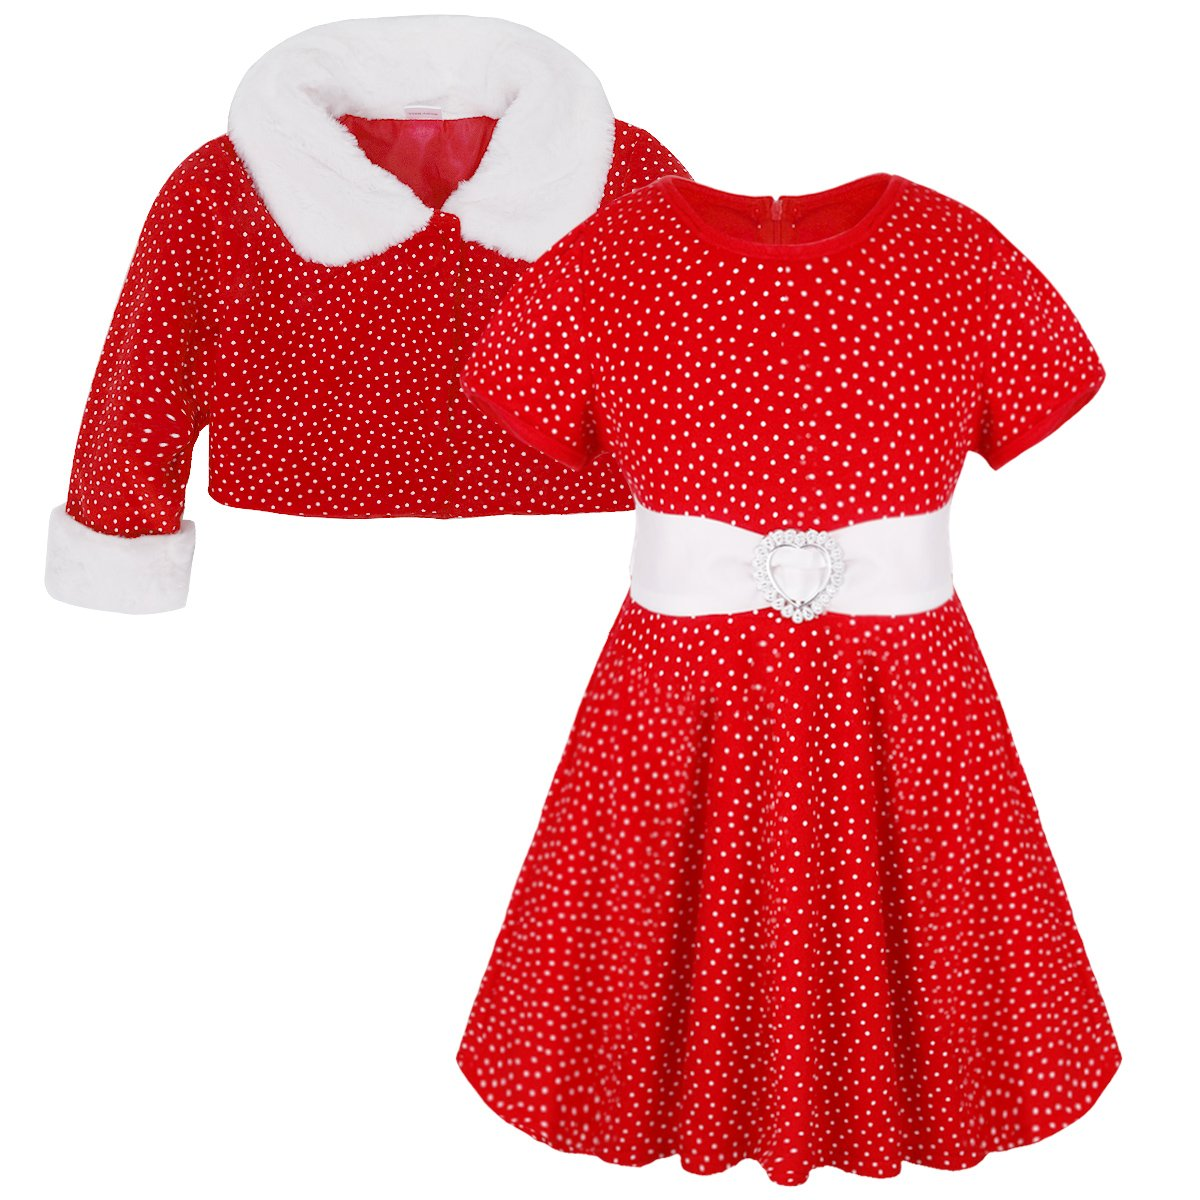 CHICTRY Baby Girls Kids Christmas Princess Outfits Red Polka Dots Dress with Faux Fur Coat set Red 18-24